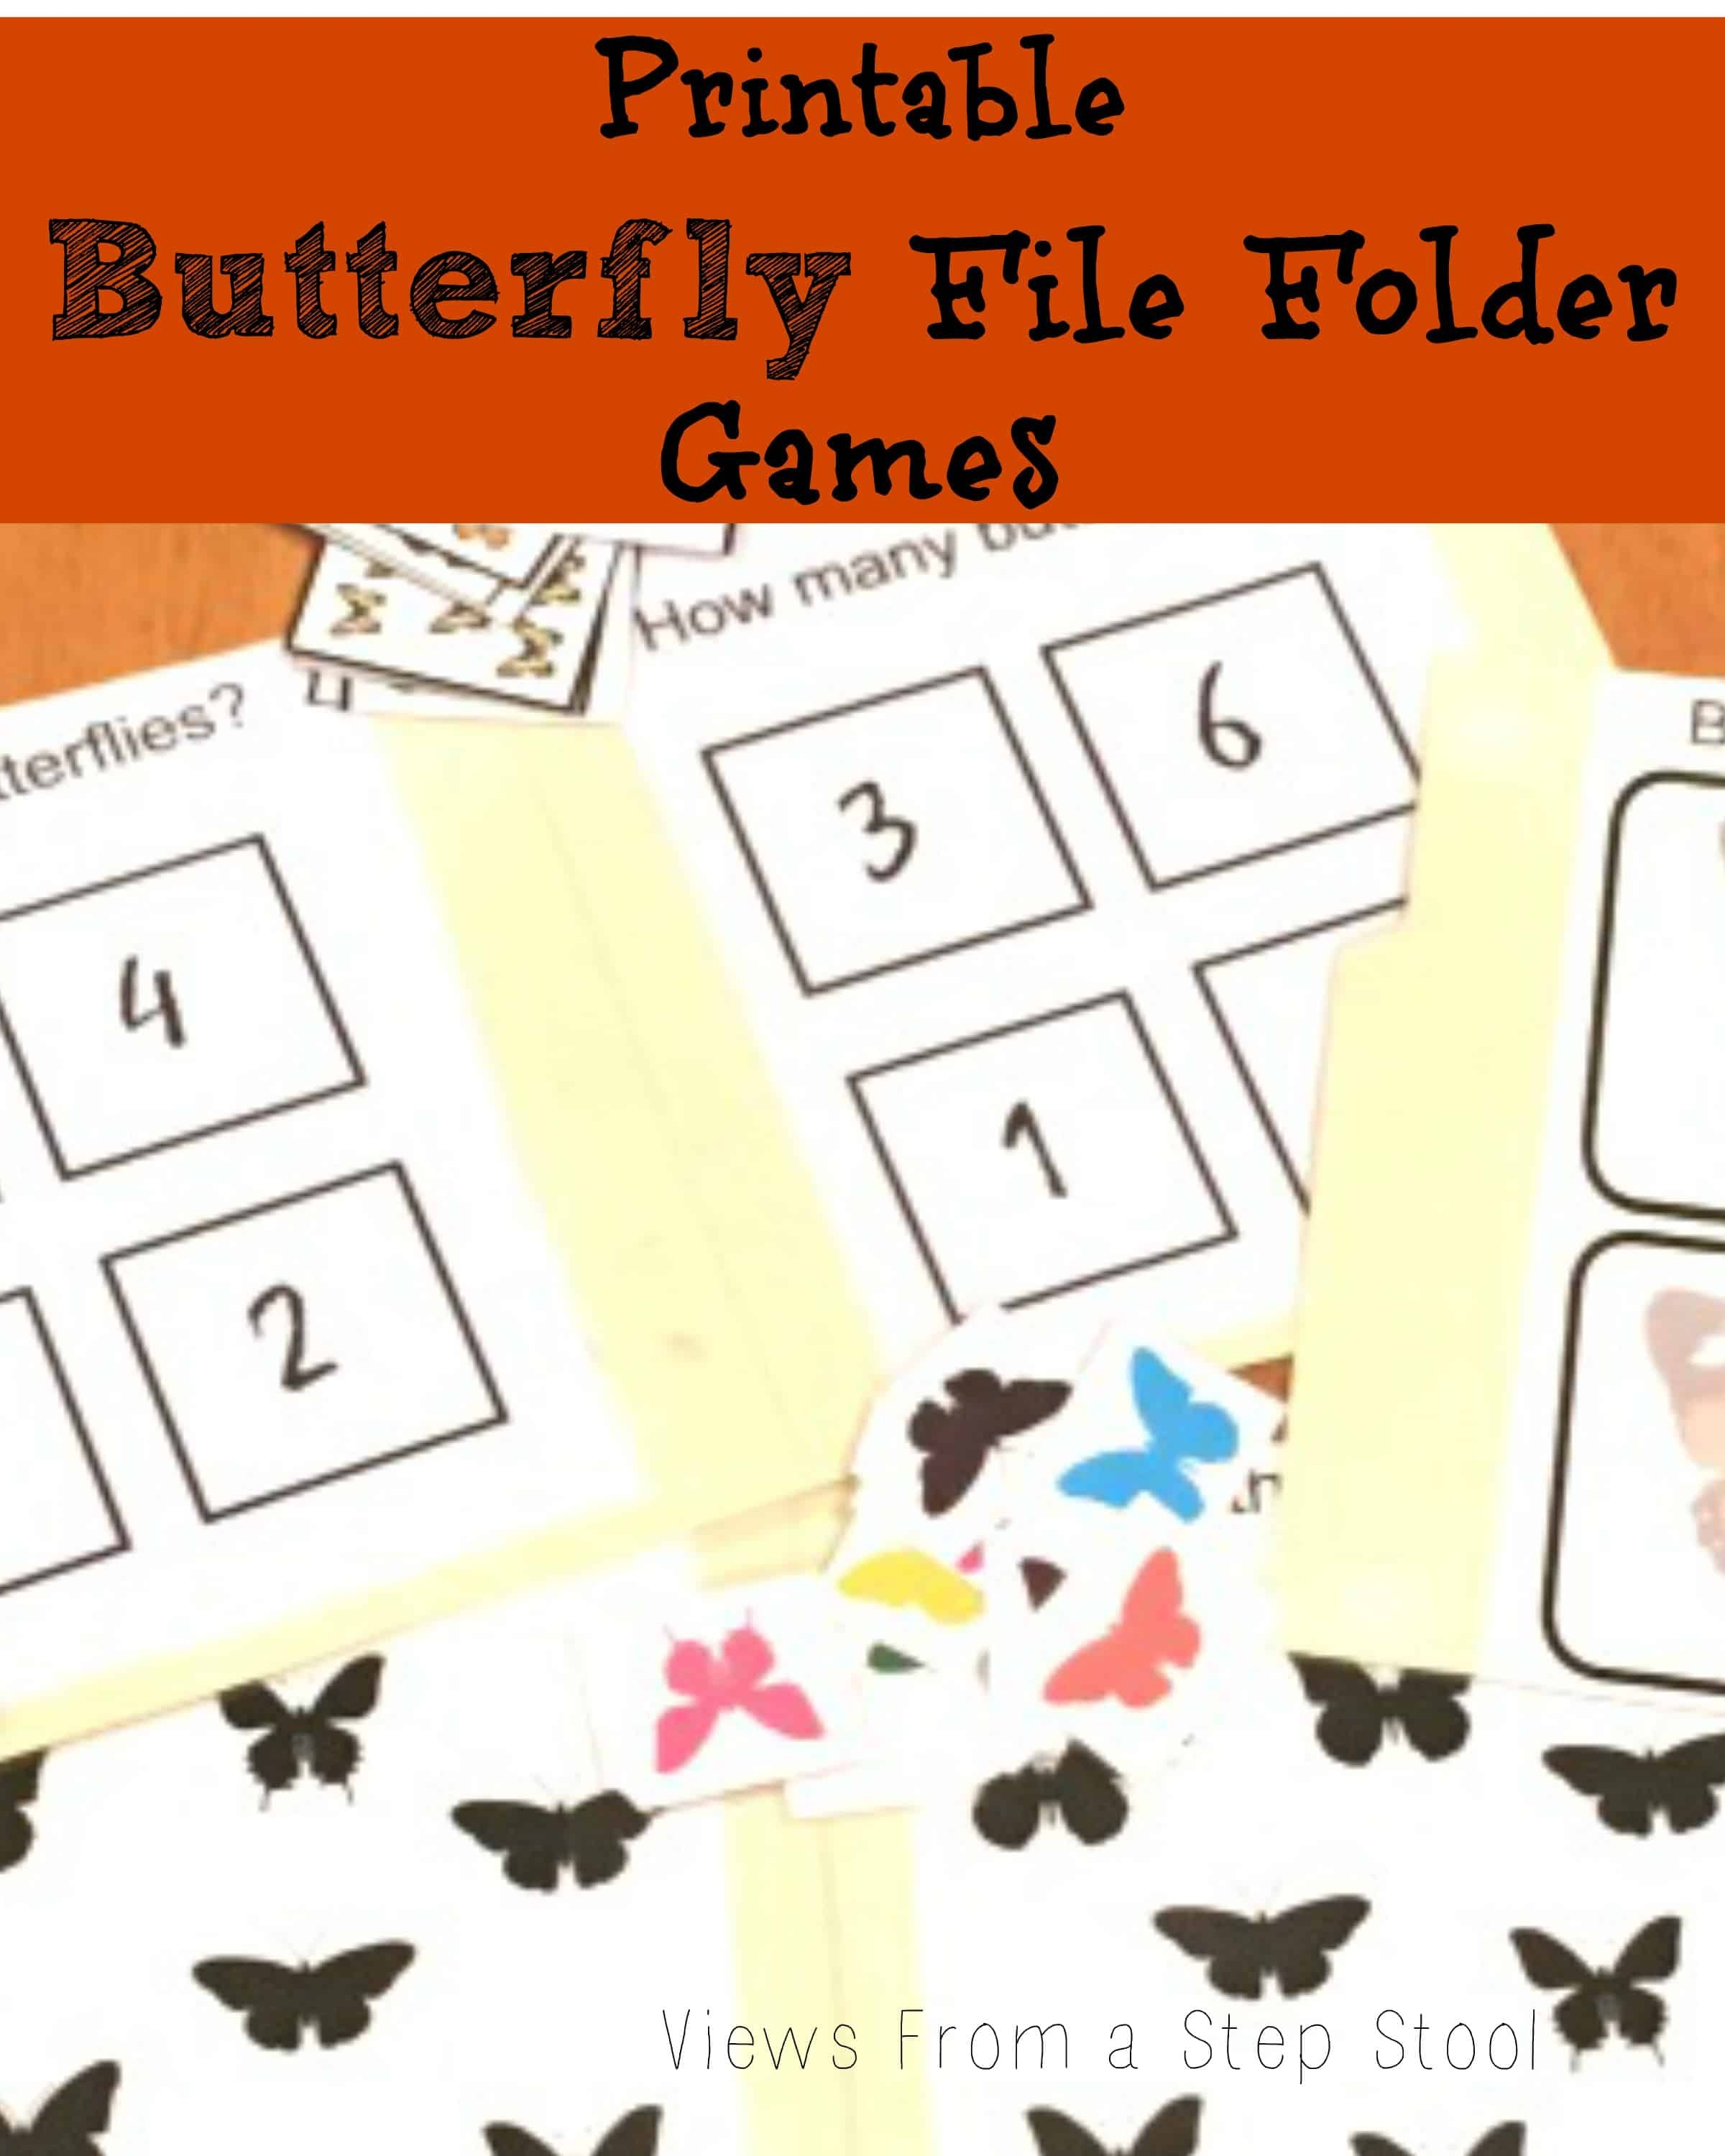 Butterfly File Folder Games: Free Printable! - Views From A Step Stool - Free Printable Math File Folder Games For Preschoolers